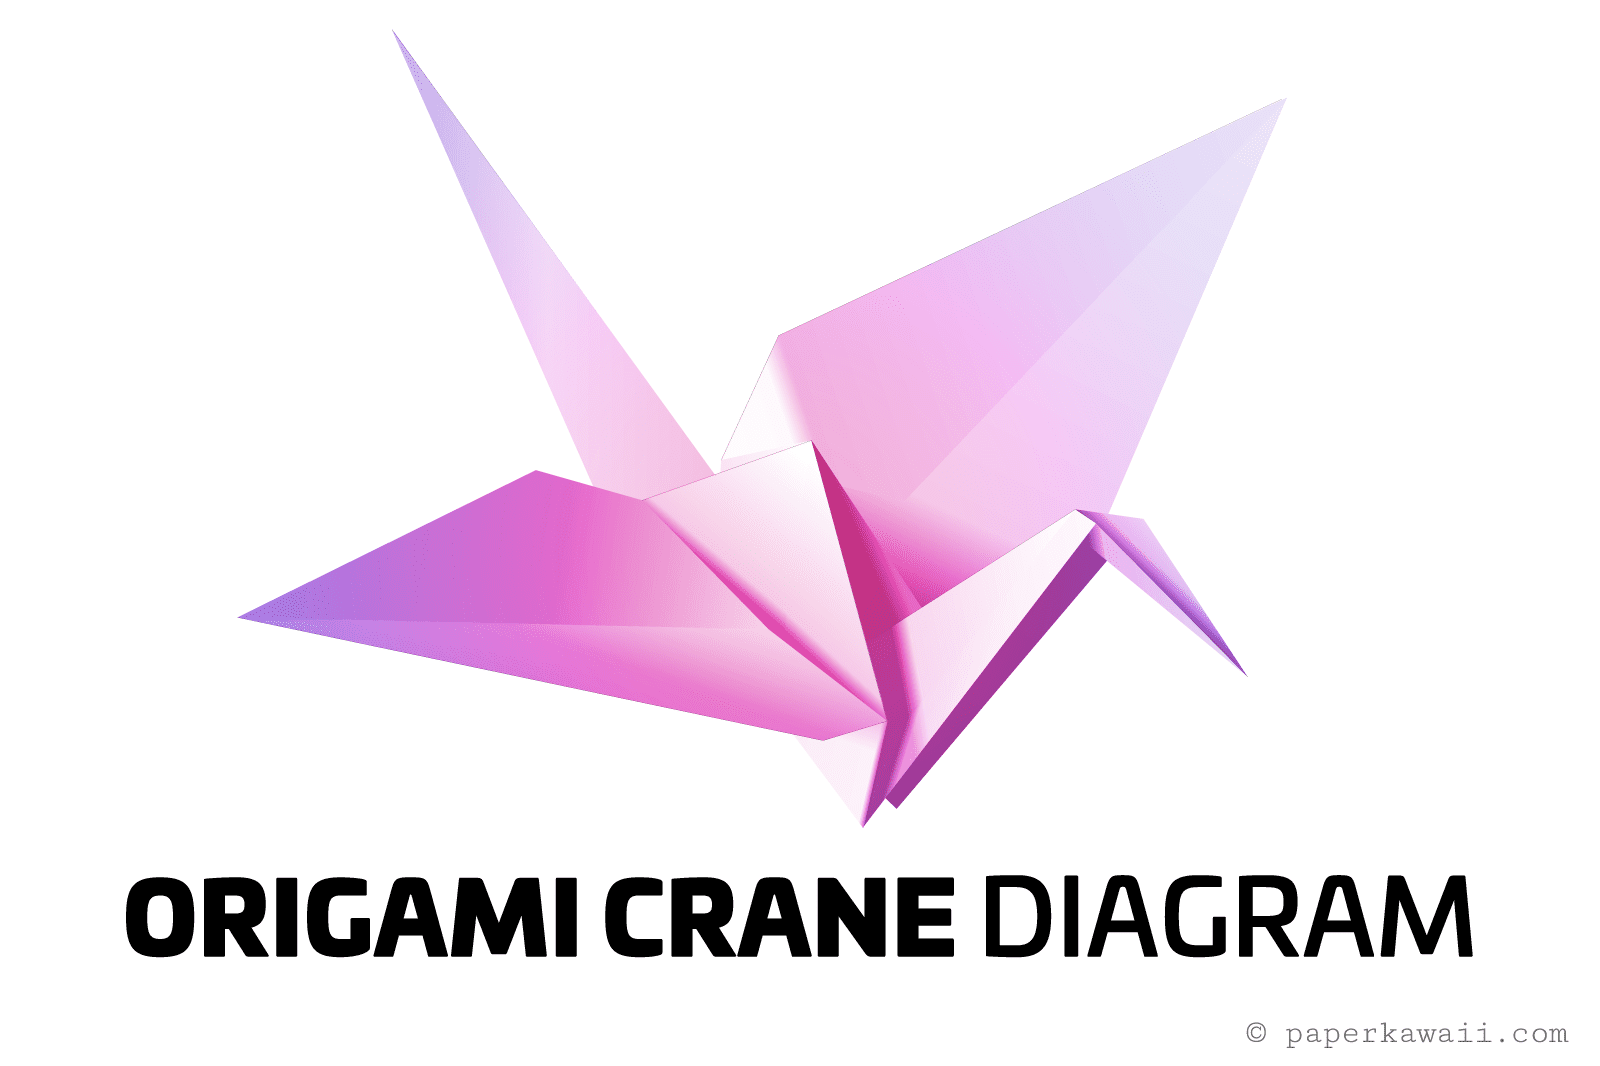 origami paper crane diagram football x and o top 10 projects for beginners